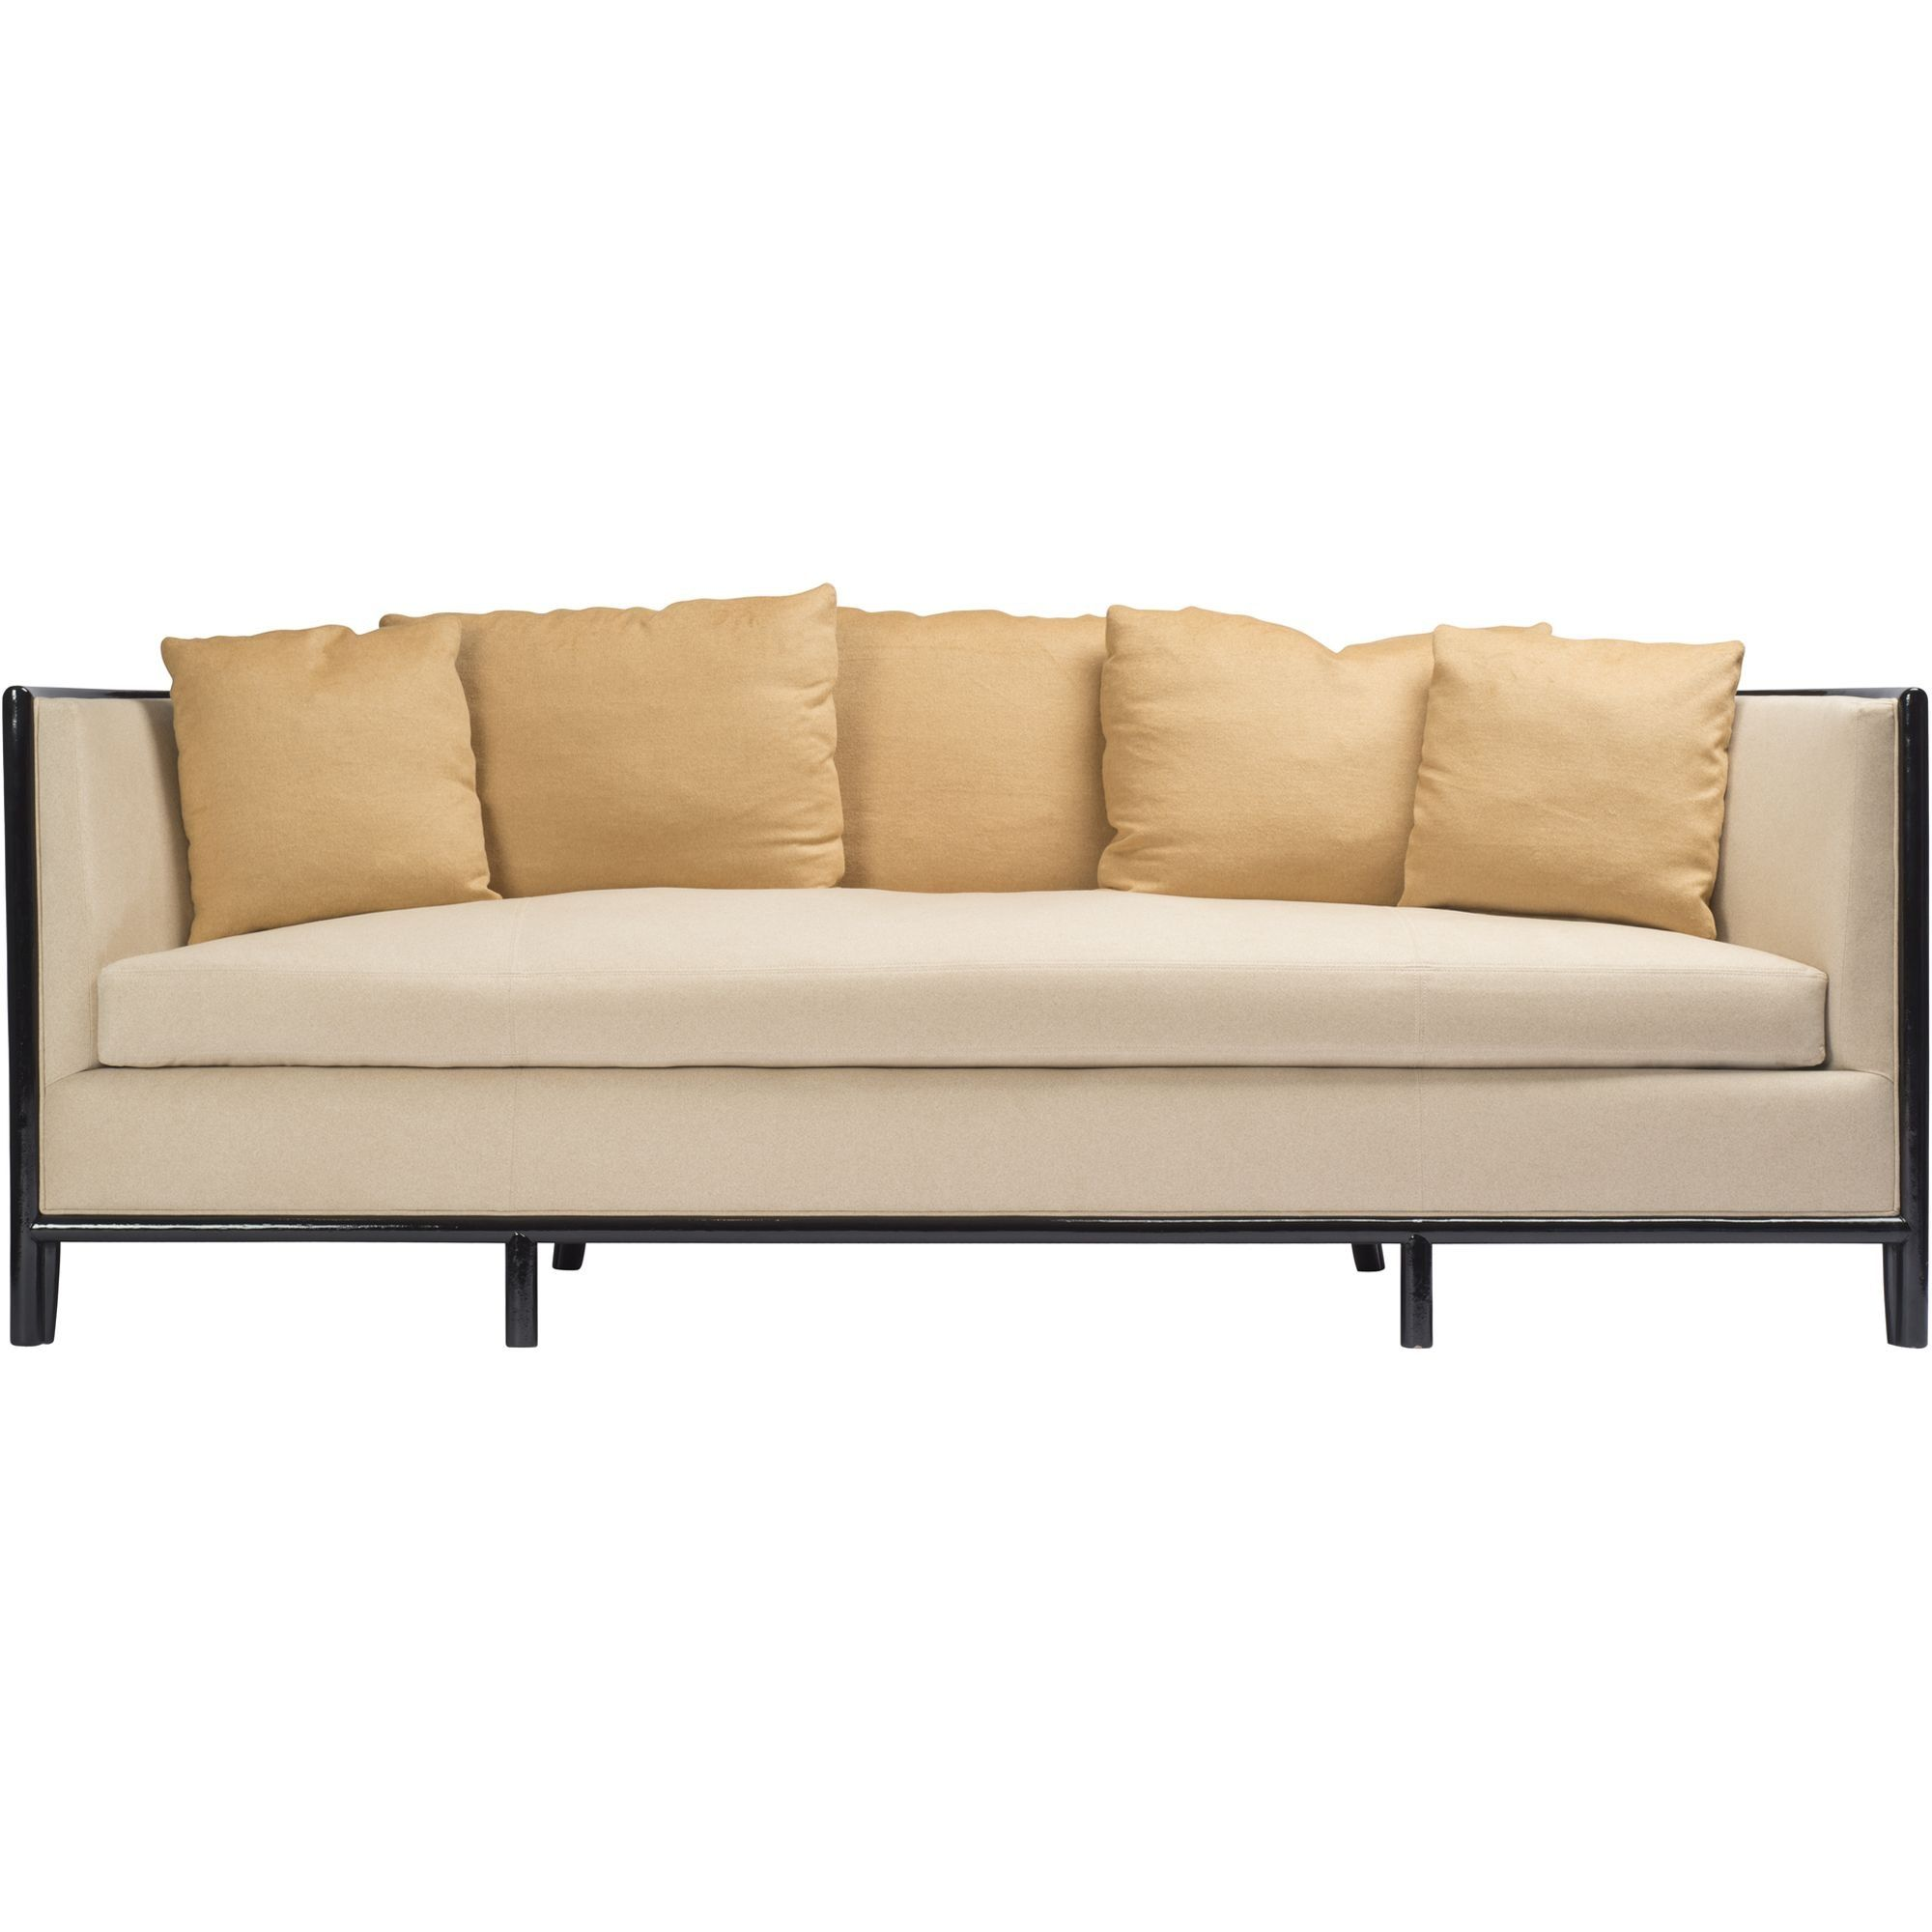 Barbara Barry Lunette Sofa With Caned Back Contemporary Transitional Art Deco Sofas Sectionals Dering Hall